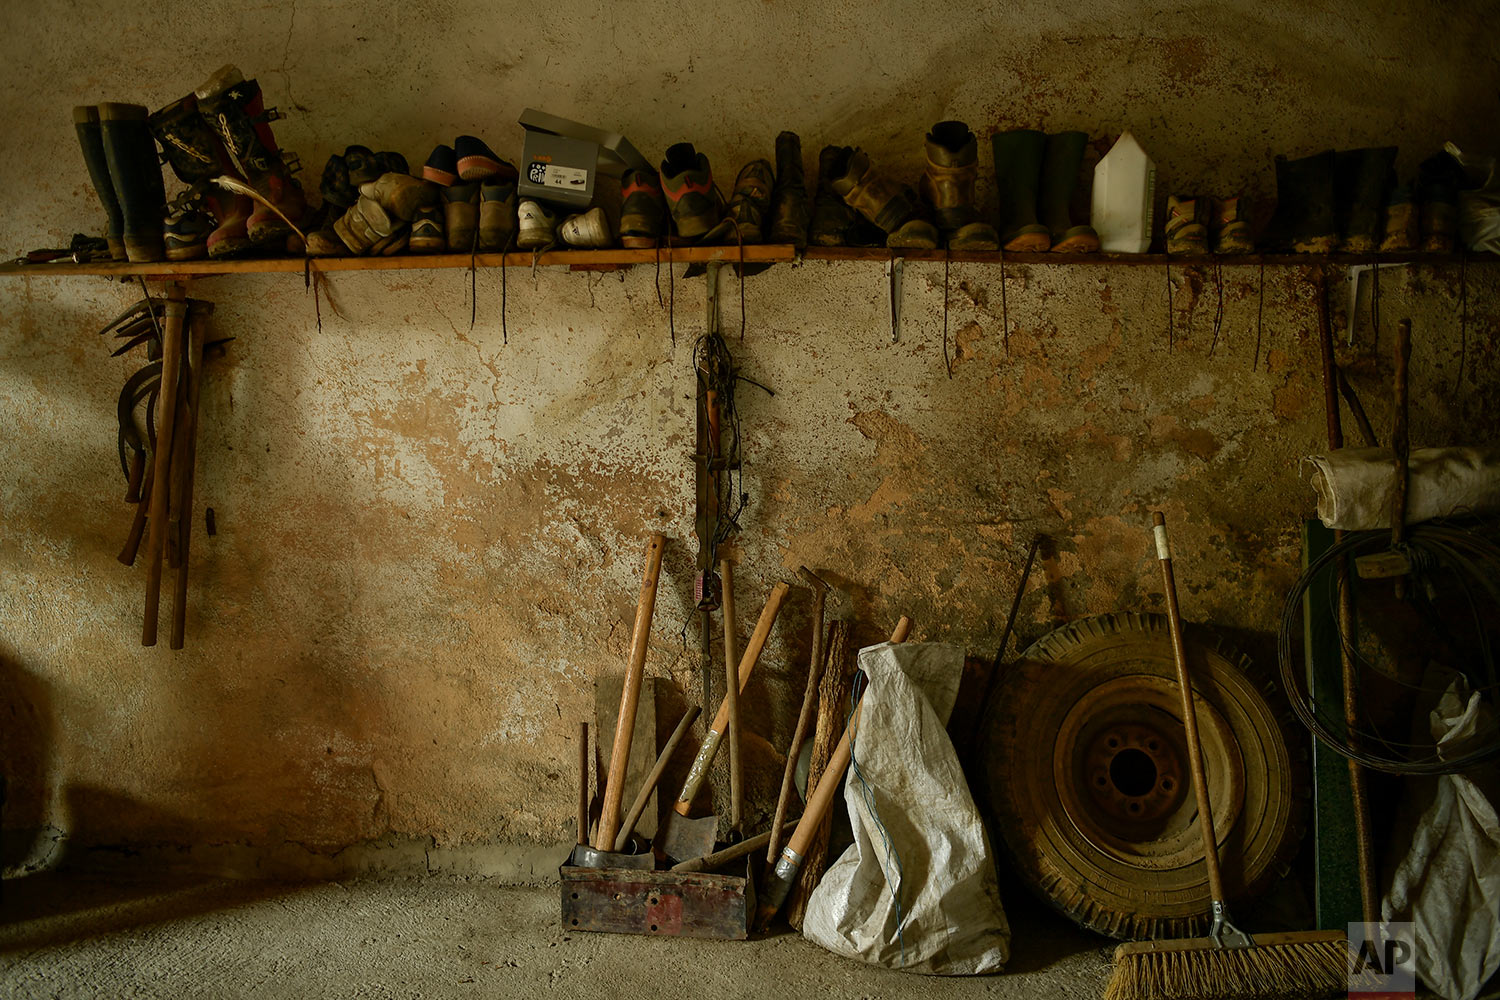 In this Aug. 29, 2018 photo, work utensils are seen organized inside a room, to be used by workers to produce traditional charcoal in Viloria, northern Spain. (AP Photo/Alvaro Barrientos)